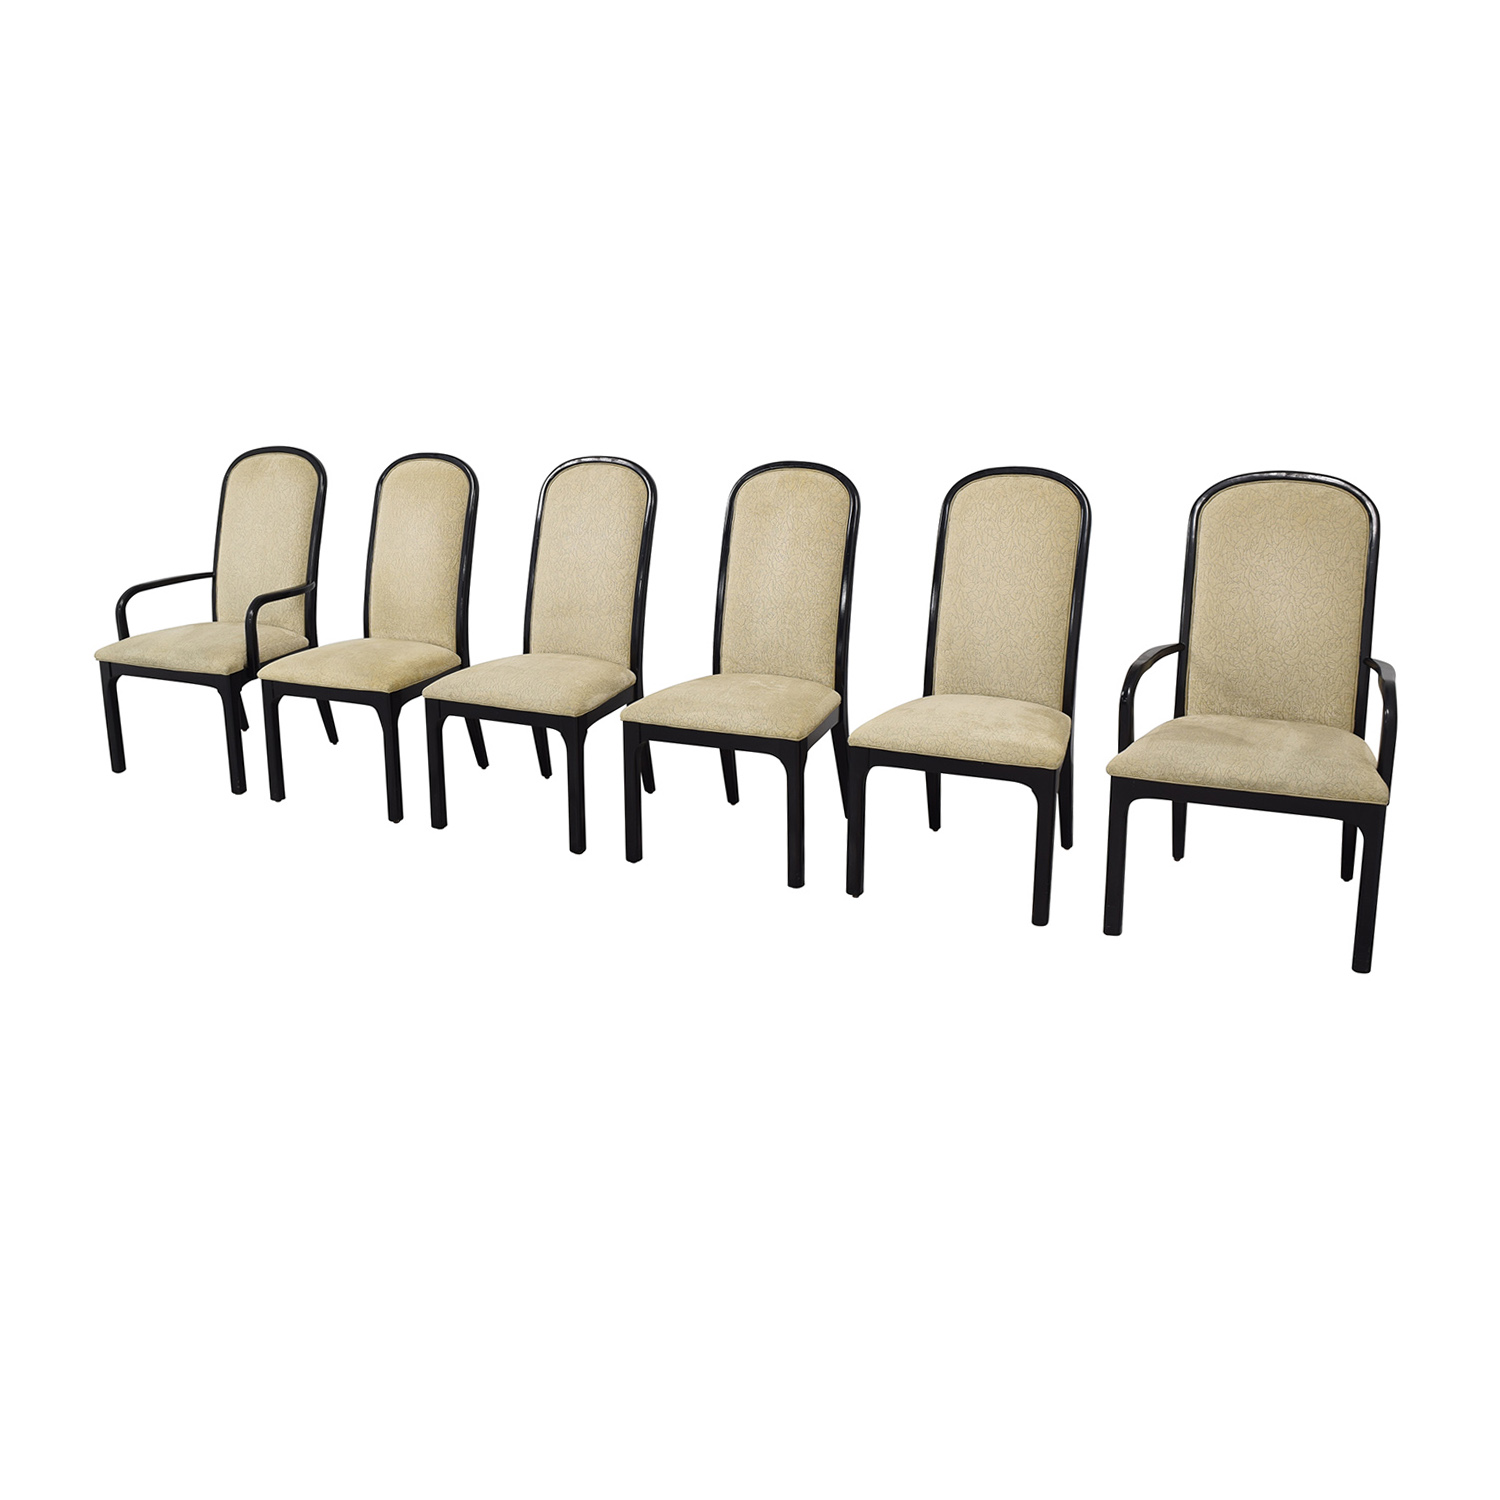 Baker Furniture Baker Furniture Upholstered Dining Chairs Dining Chairs